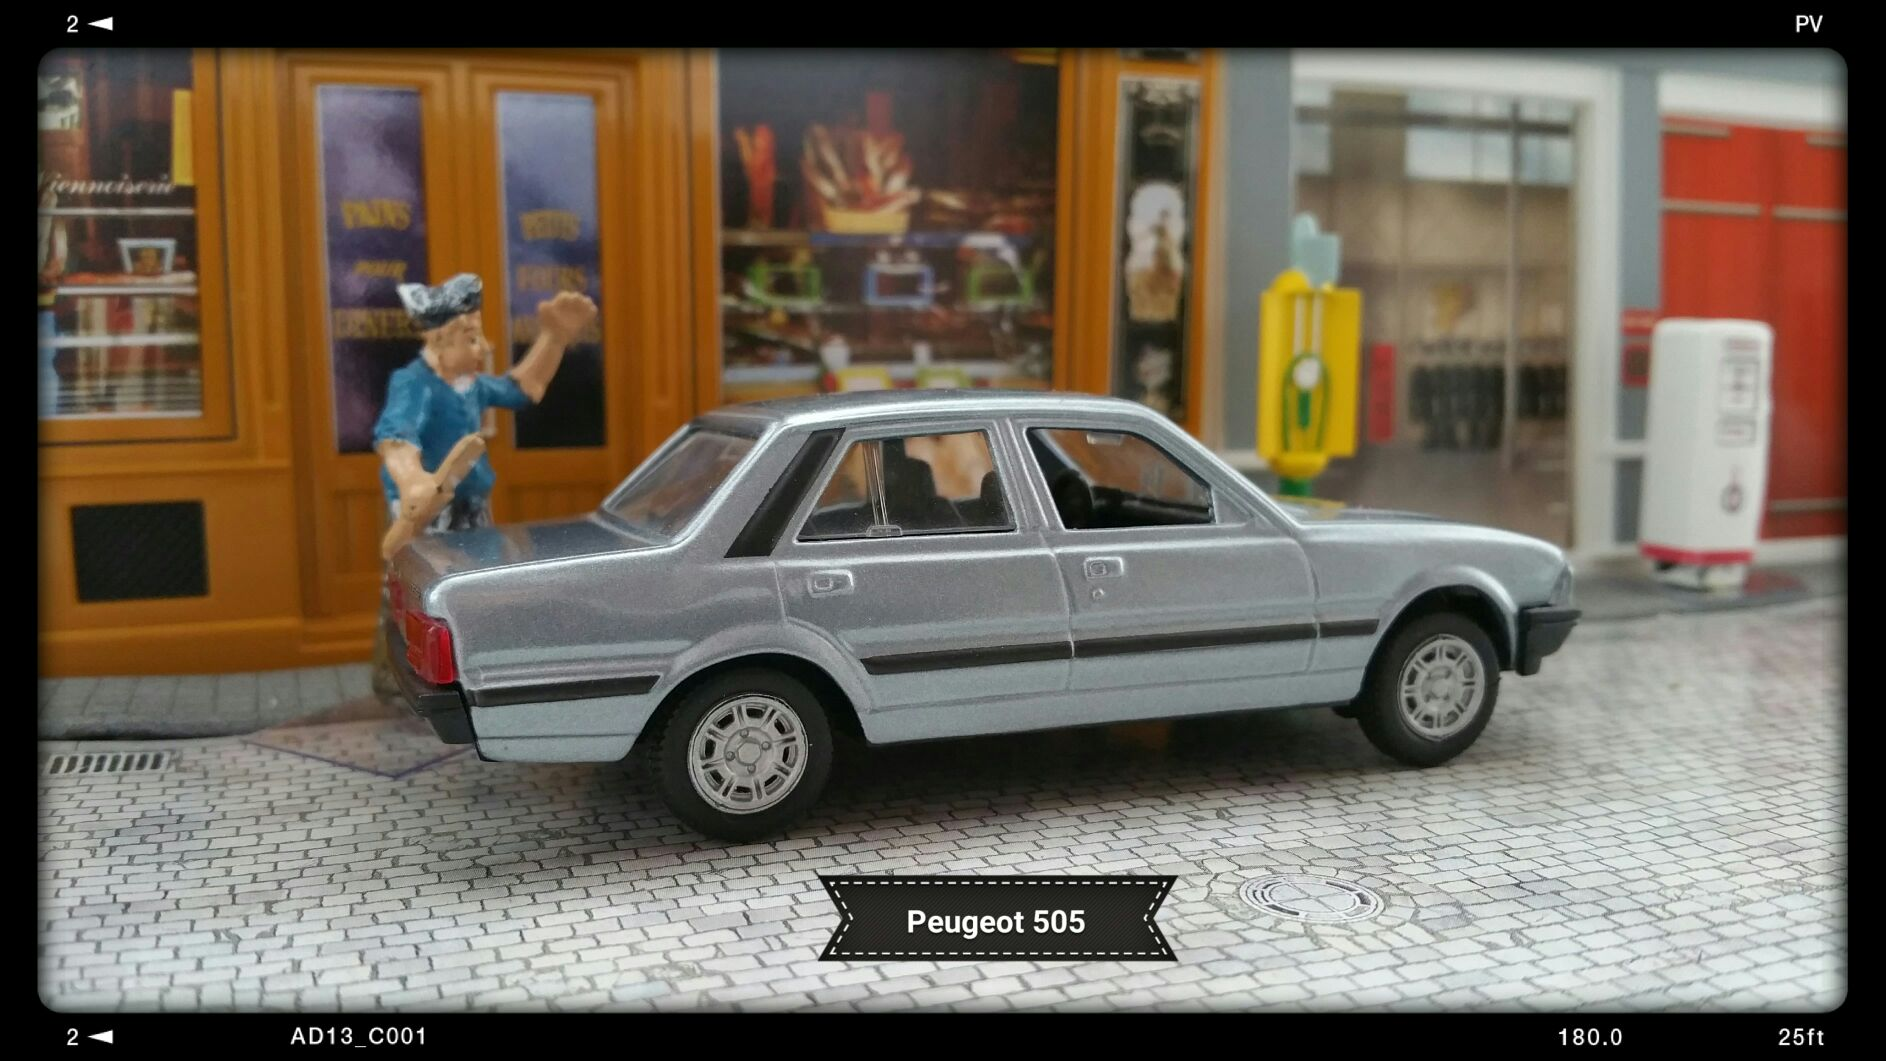 Peugeot 505 Toy Car Die Cast And Hot Wheels Norev 1979 From Sort It Apps